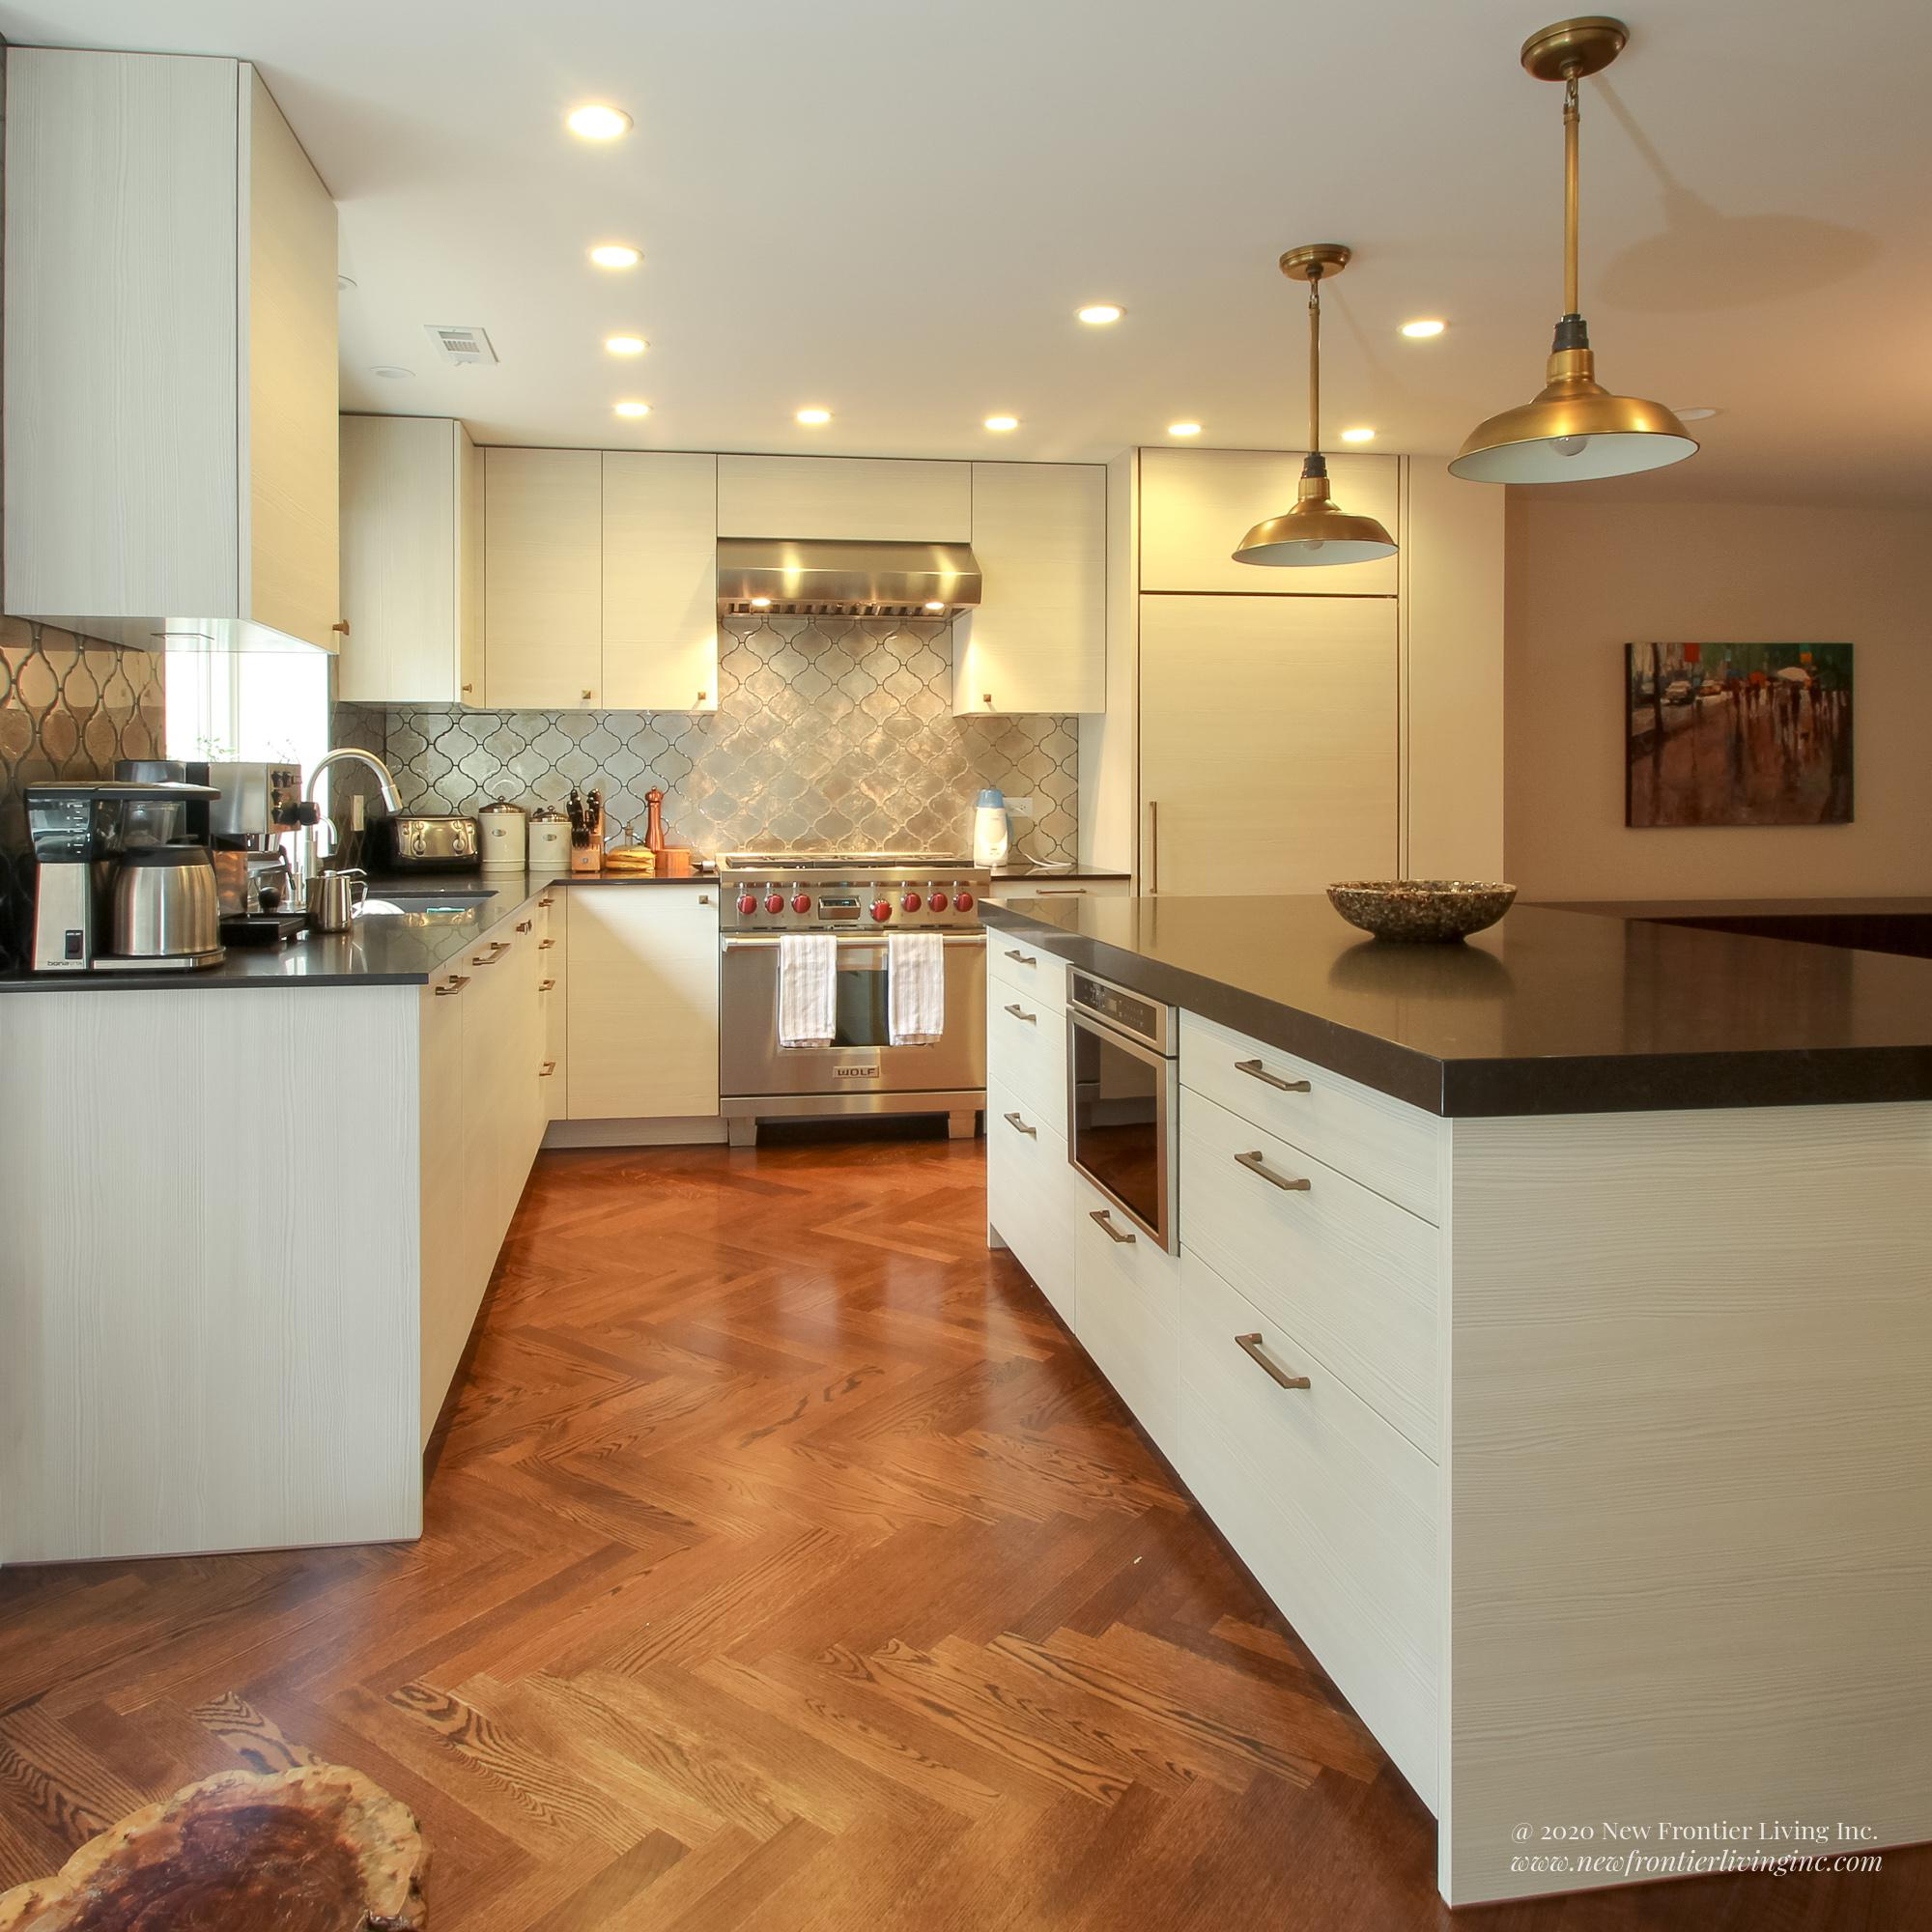 Cream kitchen with black countertops with an island